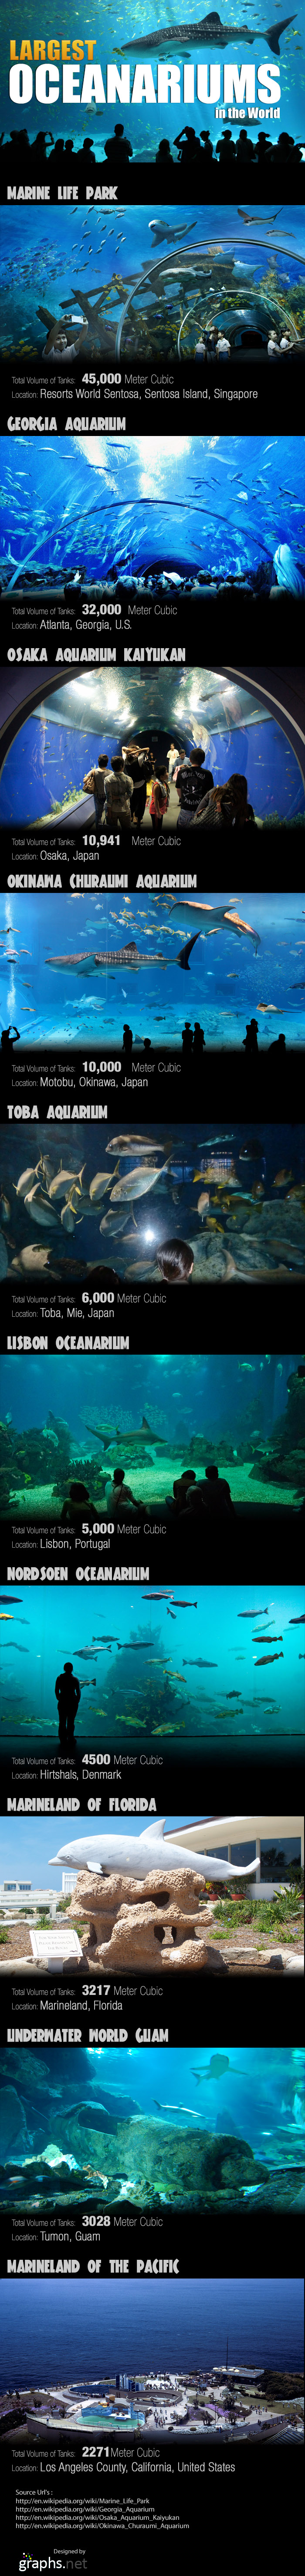 Infographic - Largest-Oceanariums-in-the-world